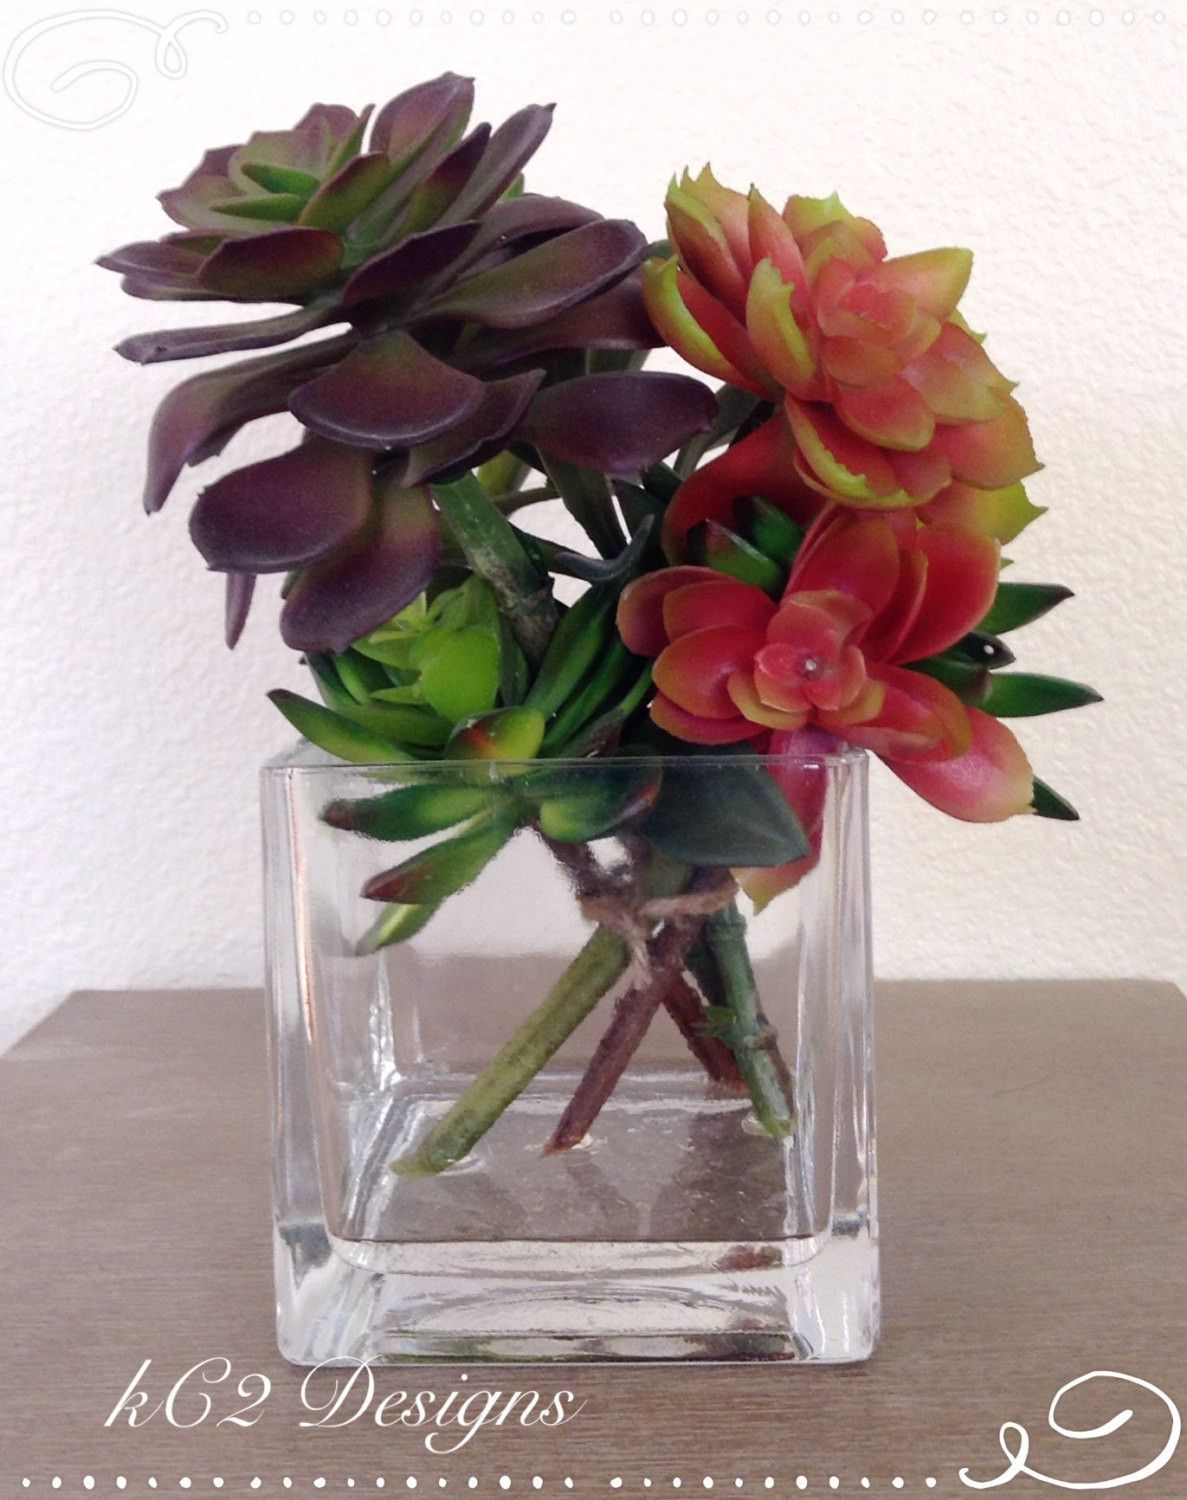 Succulent vase succulent artificial flowers silk flower succulent vase succulent artificial flowers silk flower arrangement wedding centerpiece home decor faux water glass vase reviewsmspy